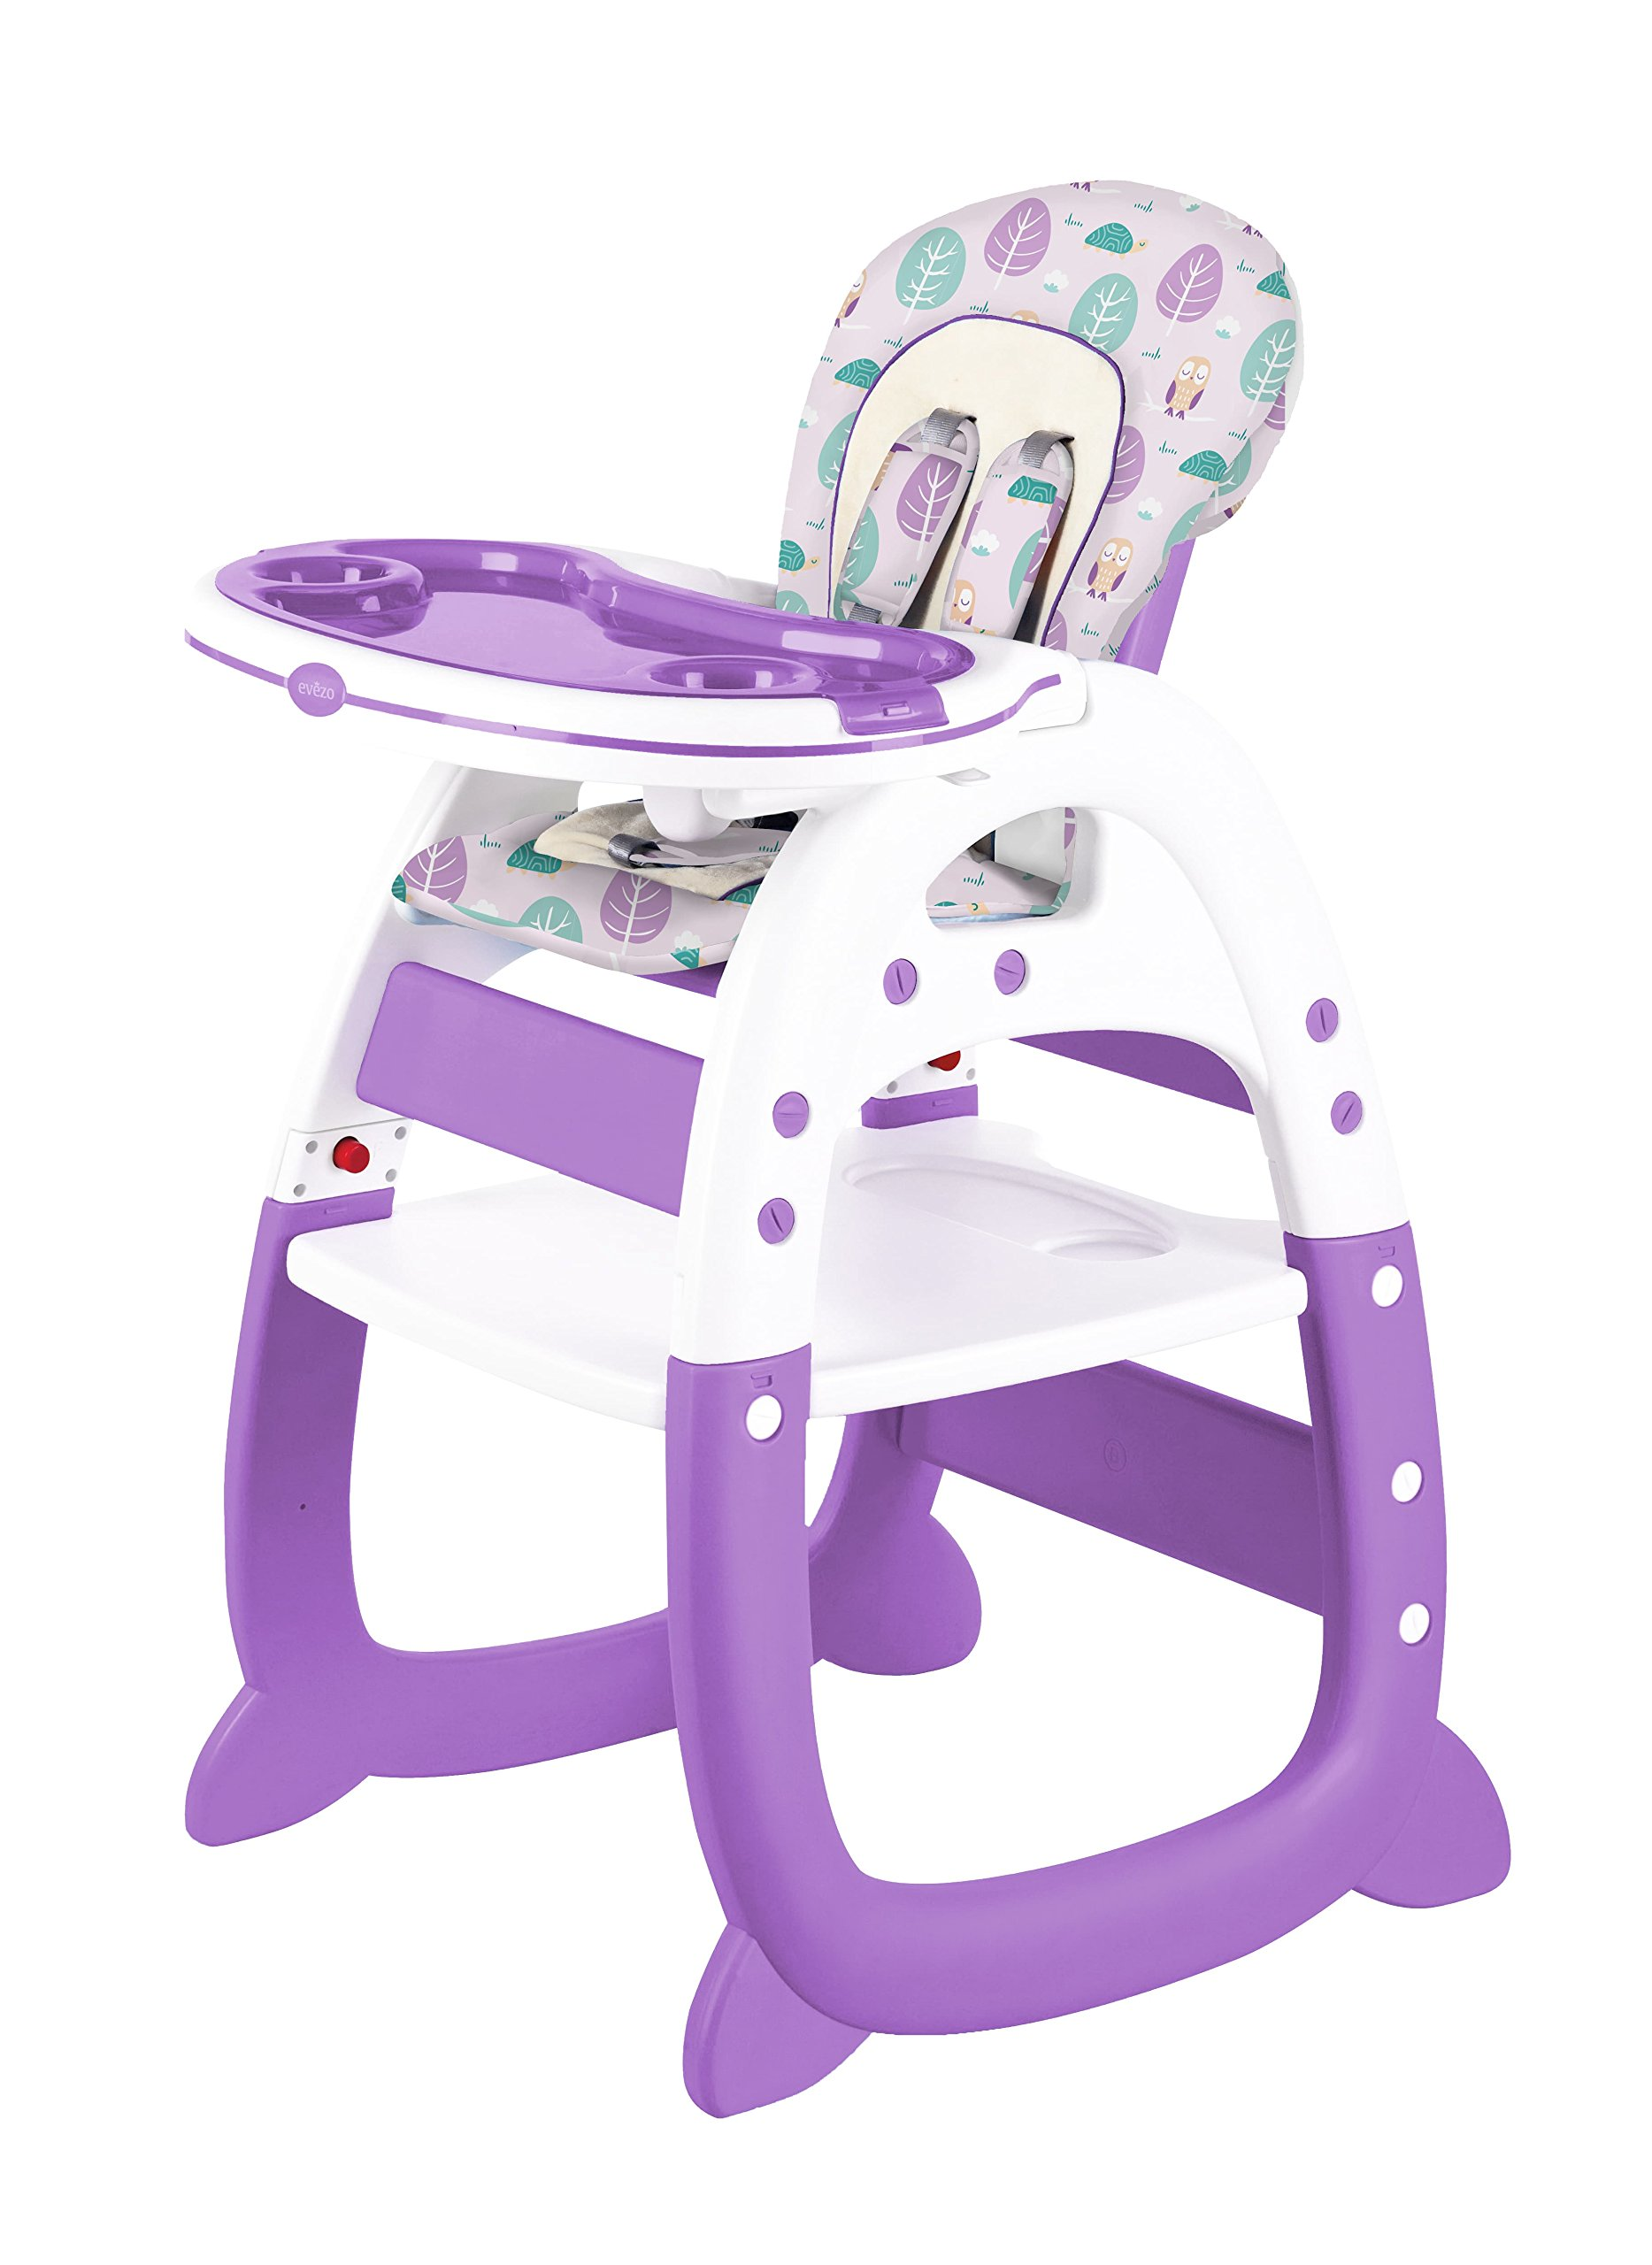 Evezo Rose Baby High Chair with Play Table Conversion 2 in 1 (Purple)